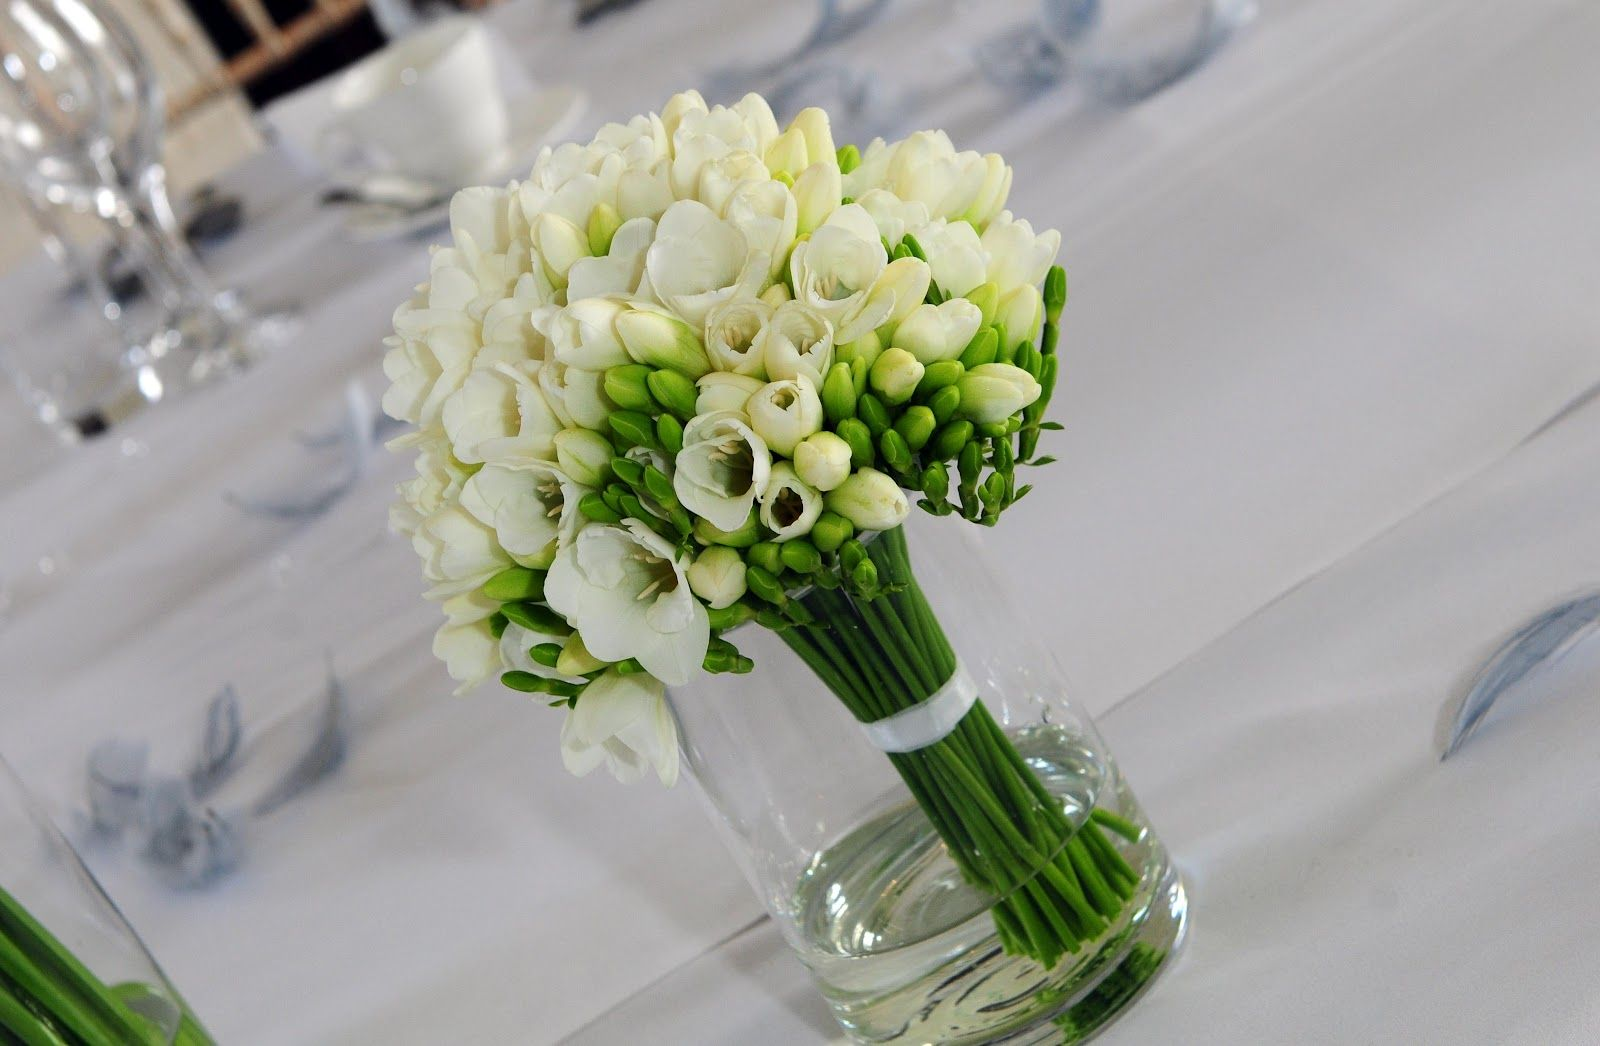 Freesia flower bouquet google search flower arrangements freesia flower bouquet google search izmirmasajfo